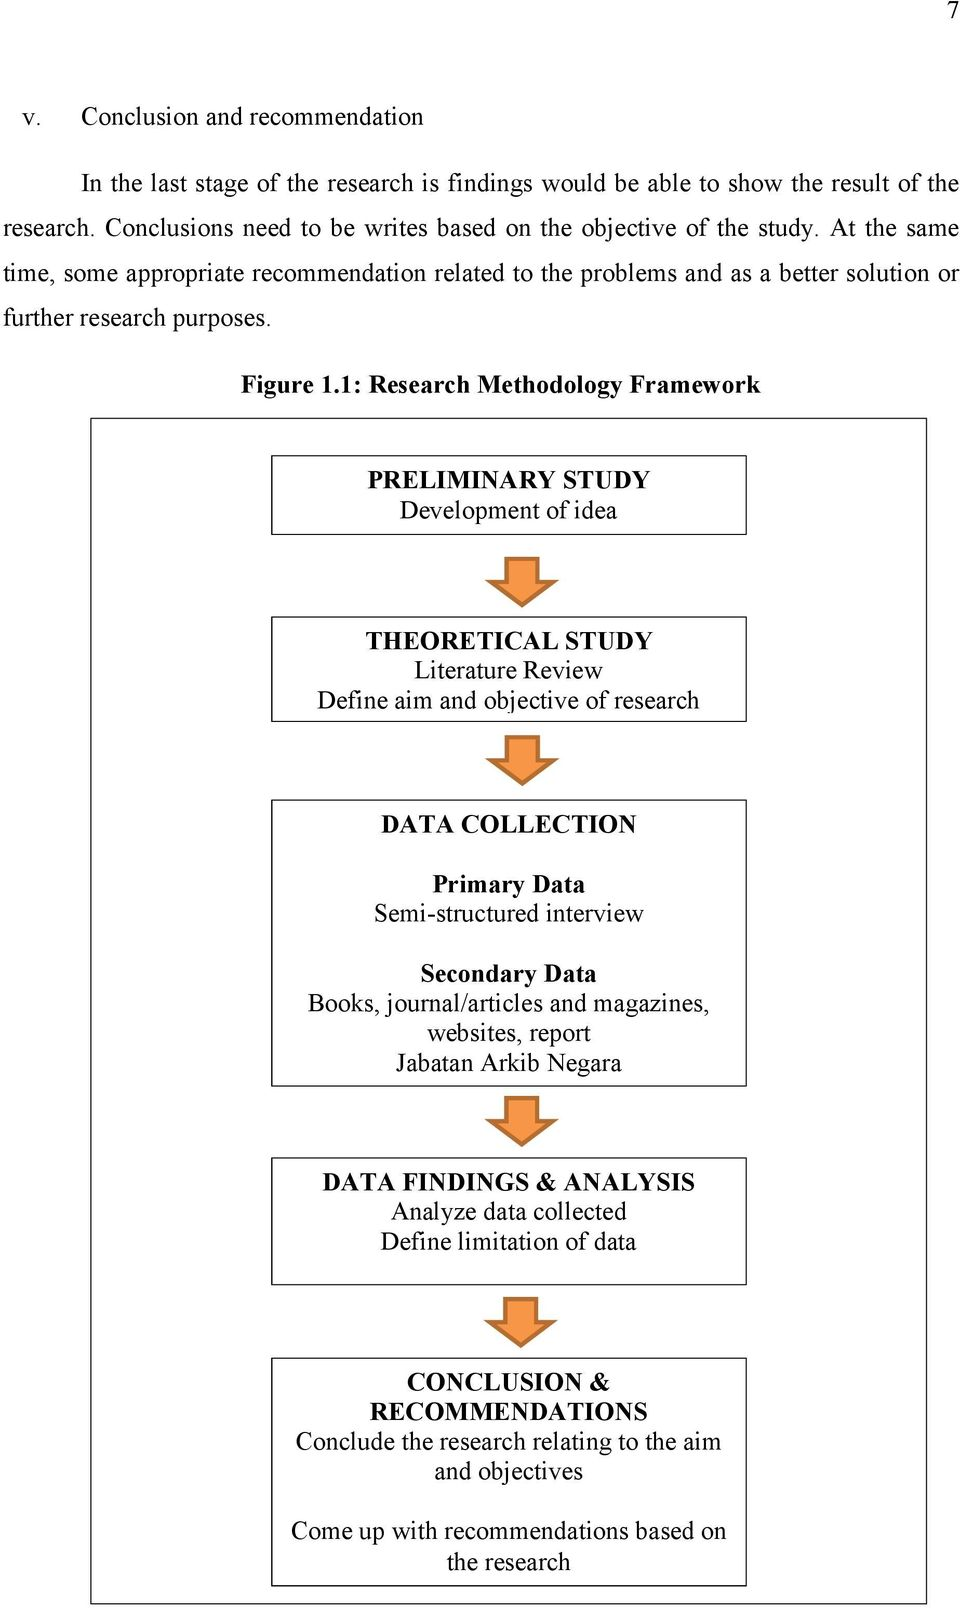 1: Research Methodology Framework PRELIMINARY STUDY Development of idea THEORETICAL STUDY Literature Review Define aim and objective of research DATA COLLECTION Primary Data Semi-structured interview